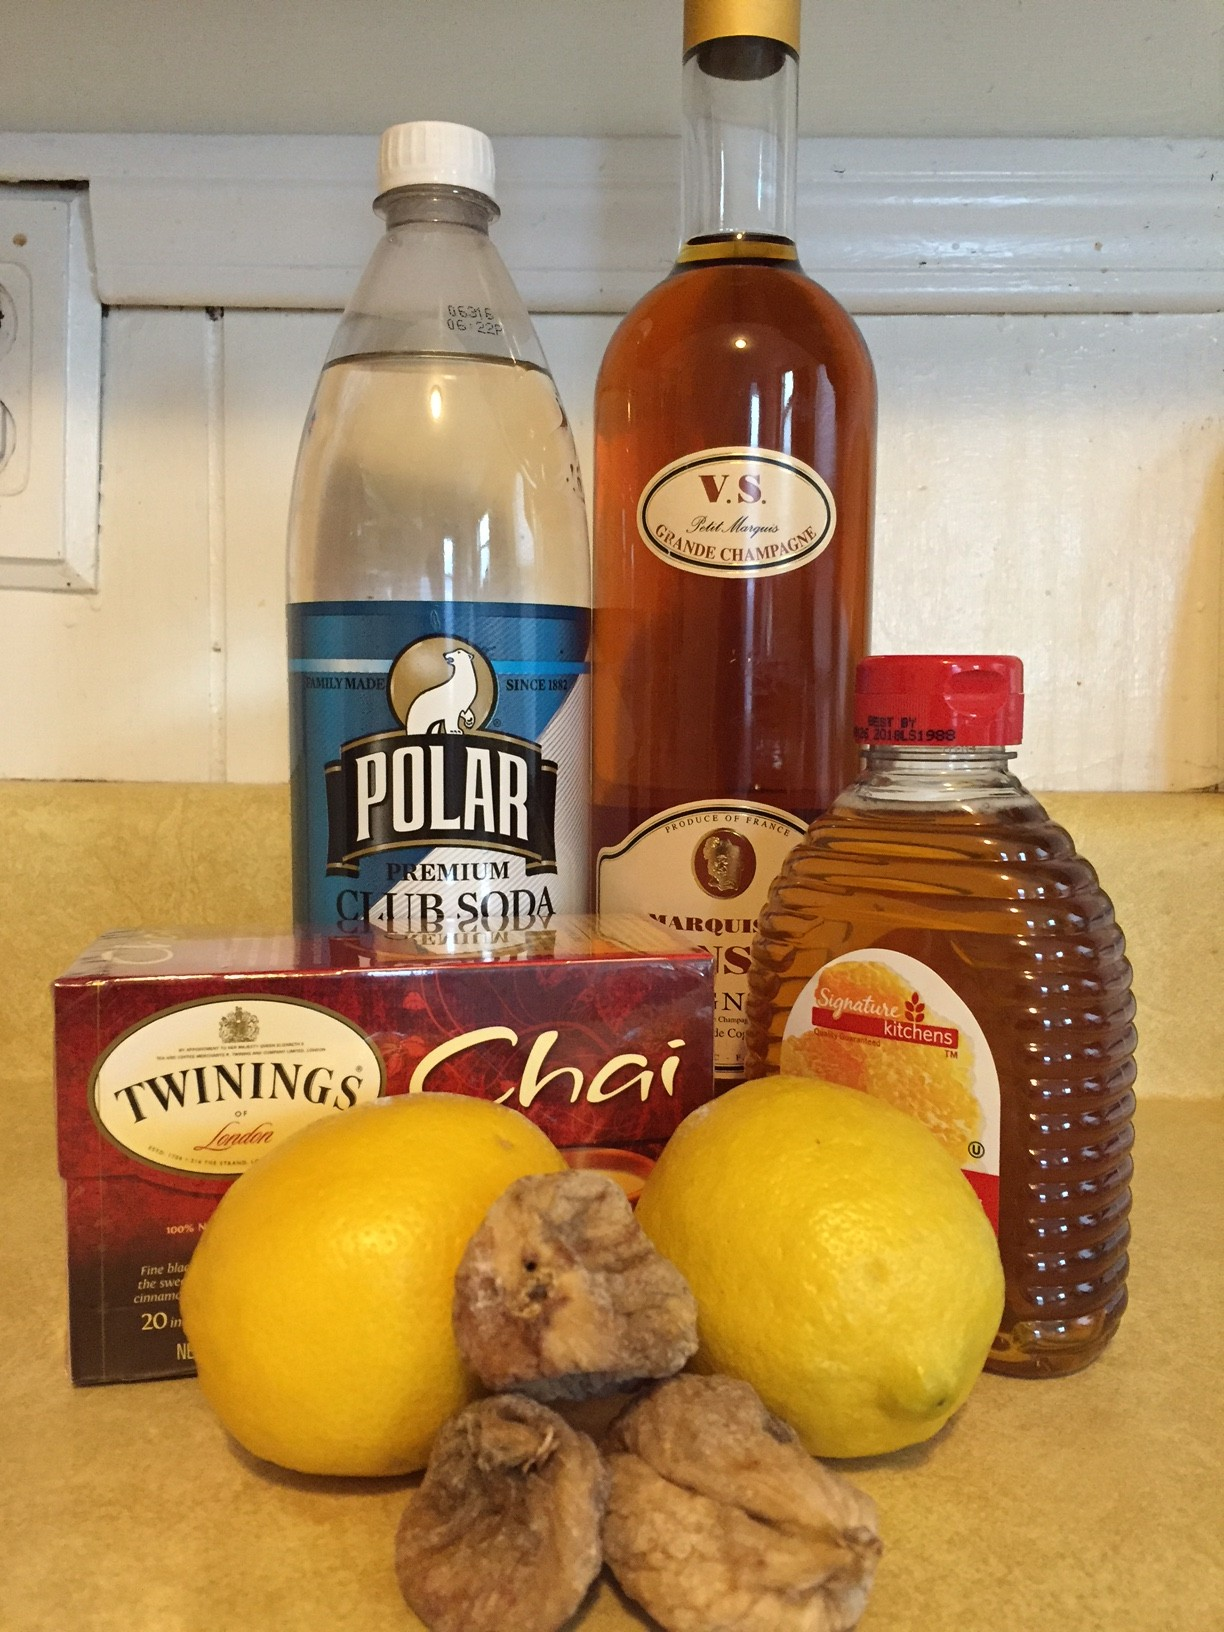 Ingredients for The Jane Steele